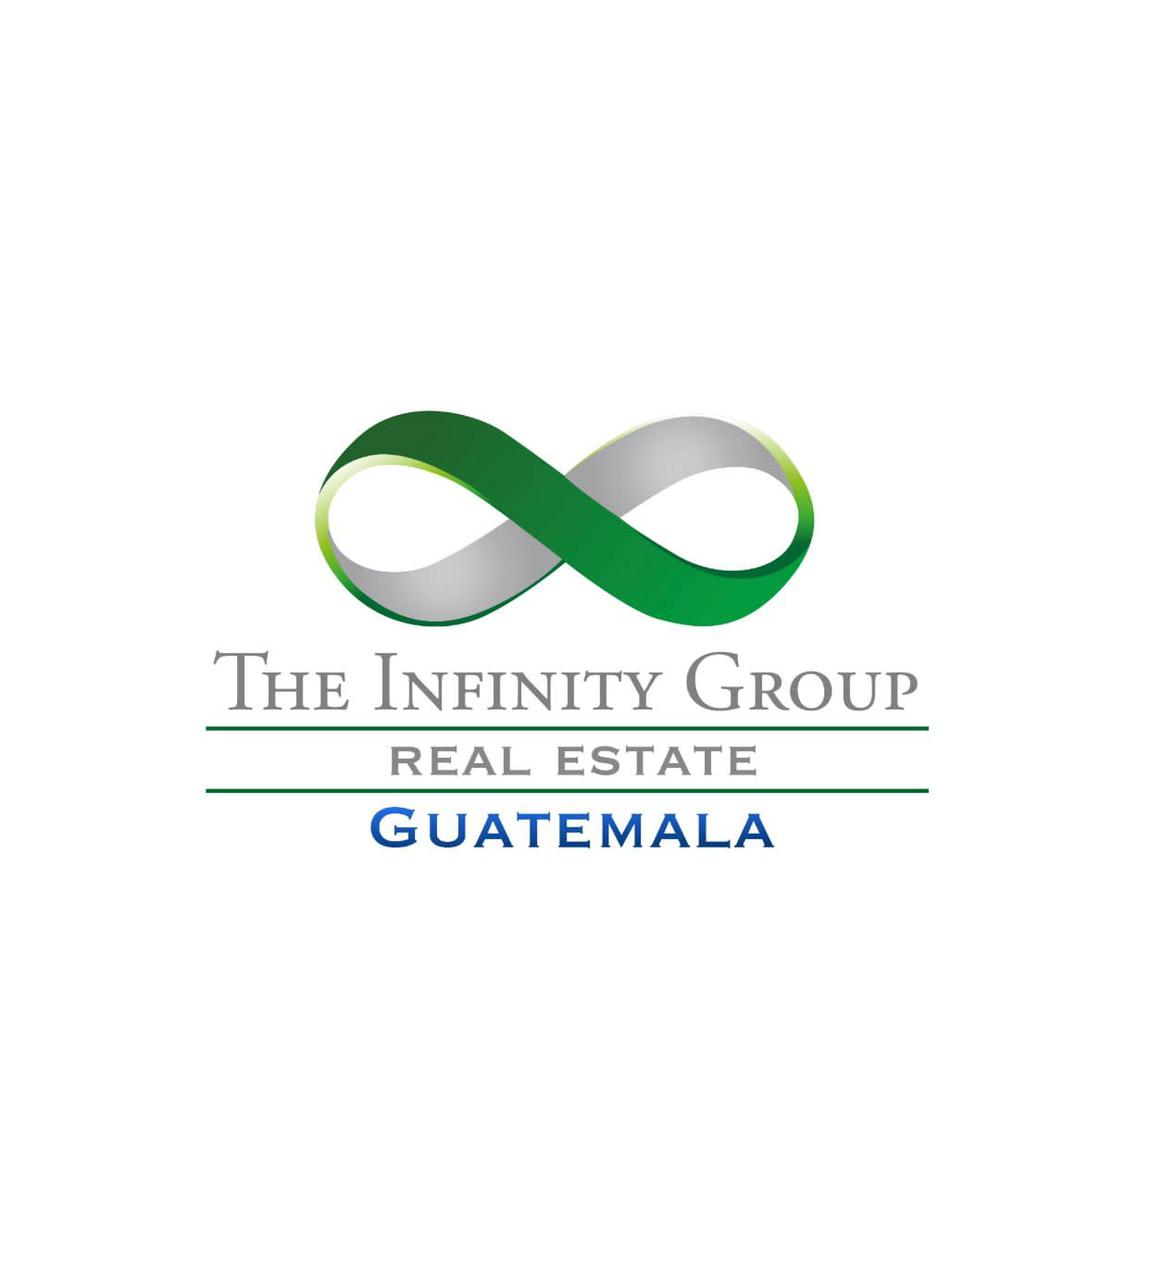 The Infinity Group Real Estate Guatemala